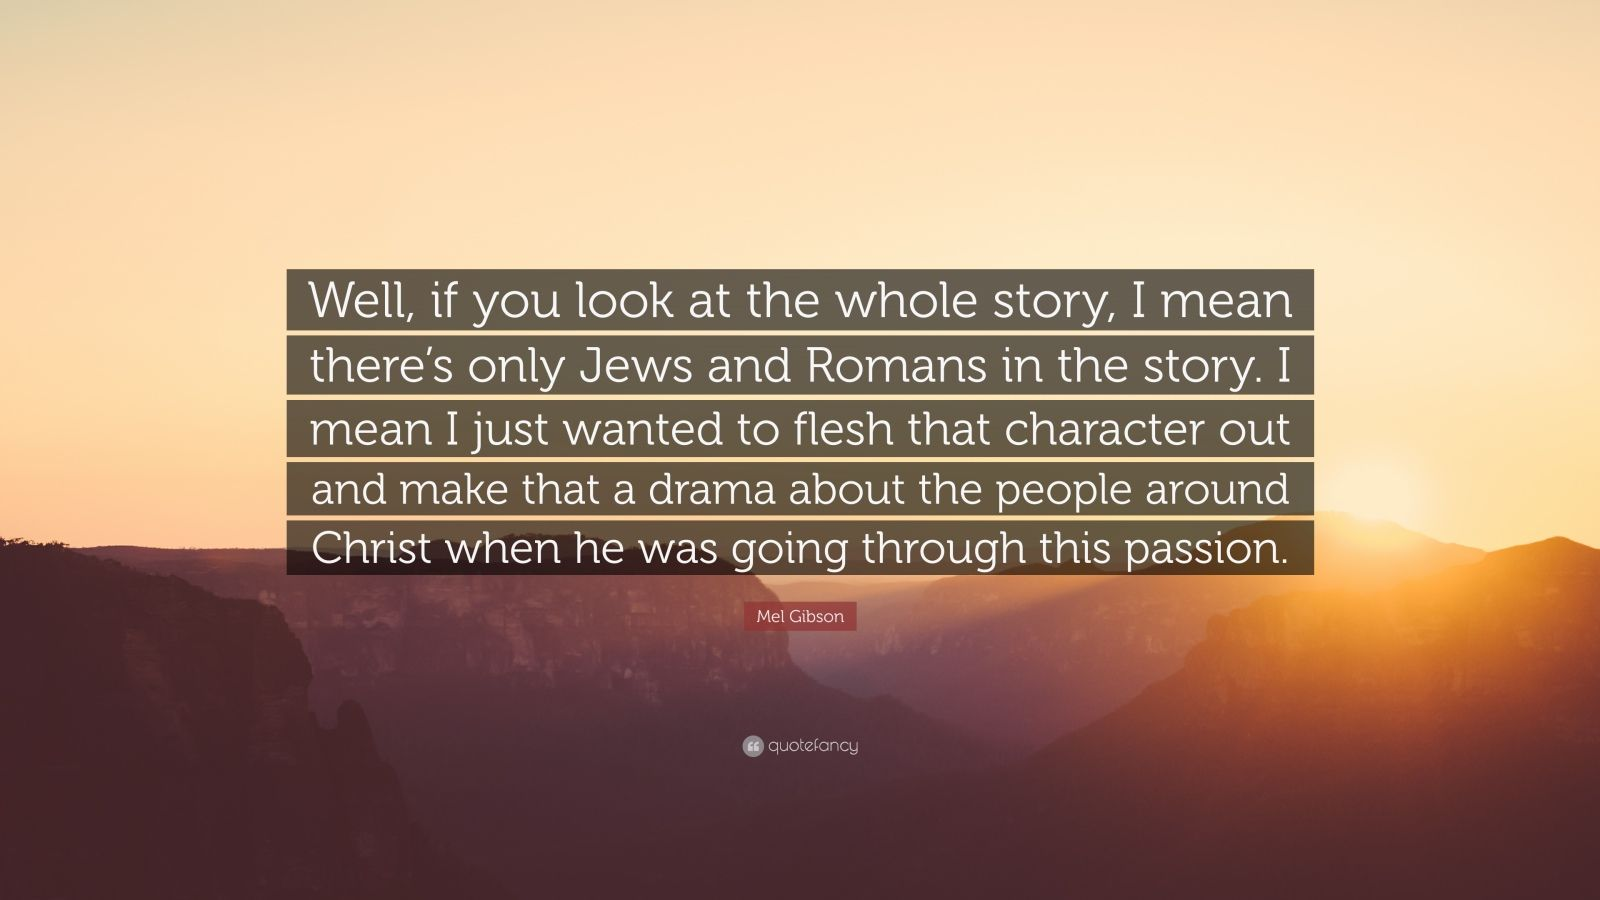 """Mel Gibson Quote: """"Well, if you look at the whole story, I mean there's only Jews and Romans in the story. I mean I just wanted to flesh that character out and make that a drama about the people around Christ when he was going through this passion."""""""